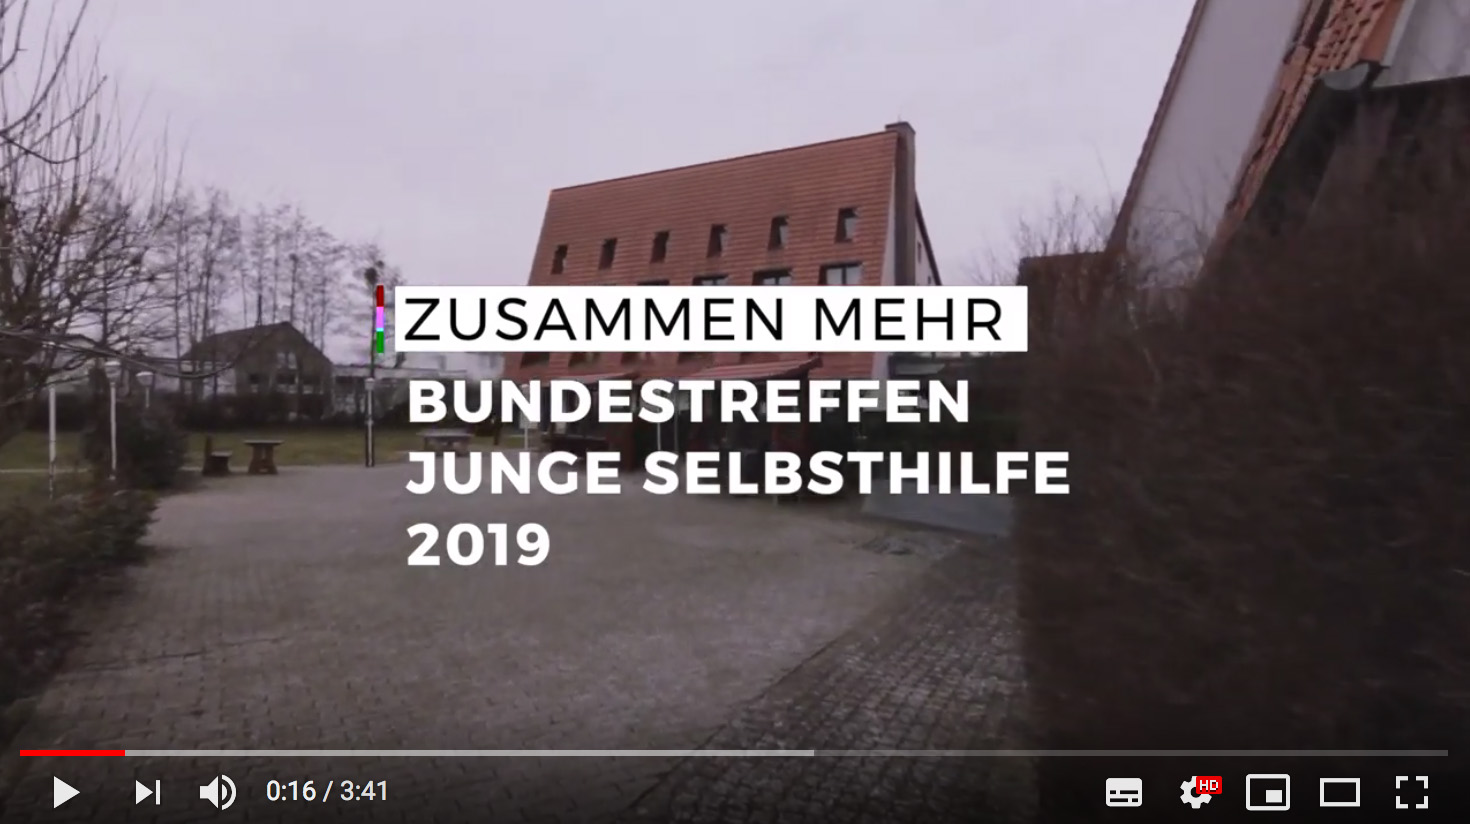 data/Bilder/Web/Screenshot-Video-Bundestreffen-2019.jpg